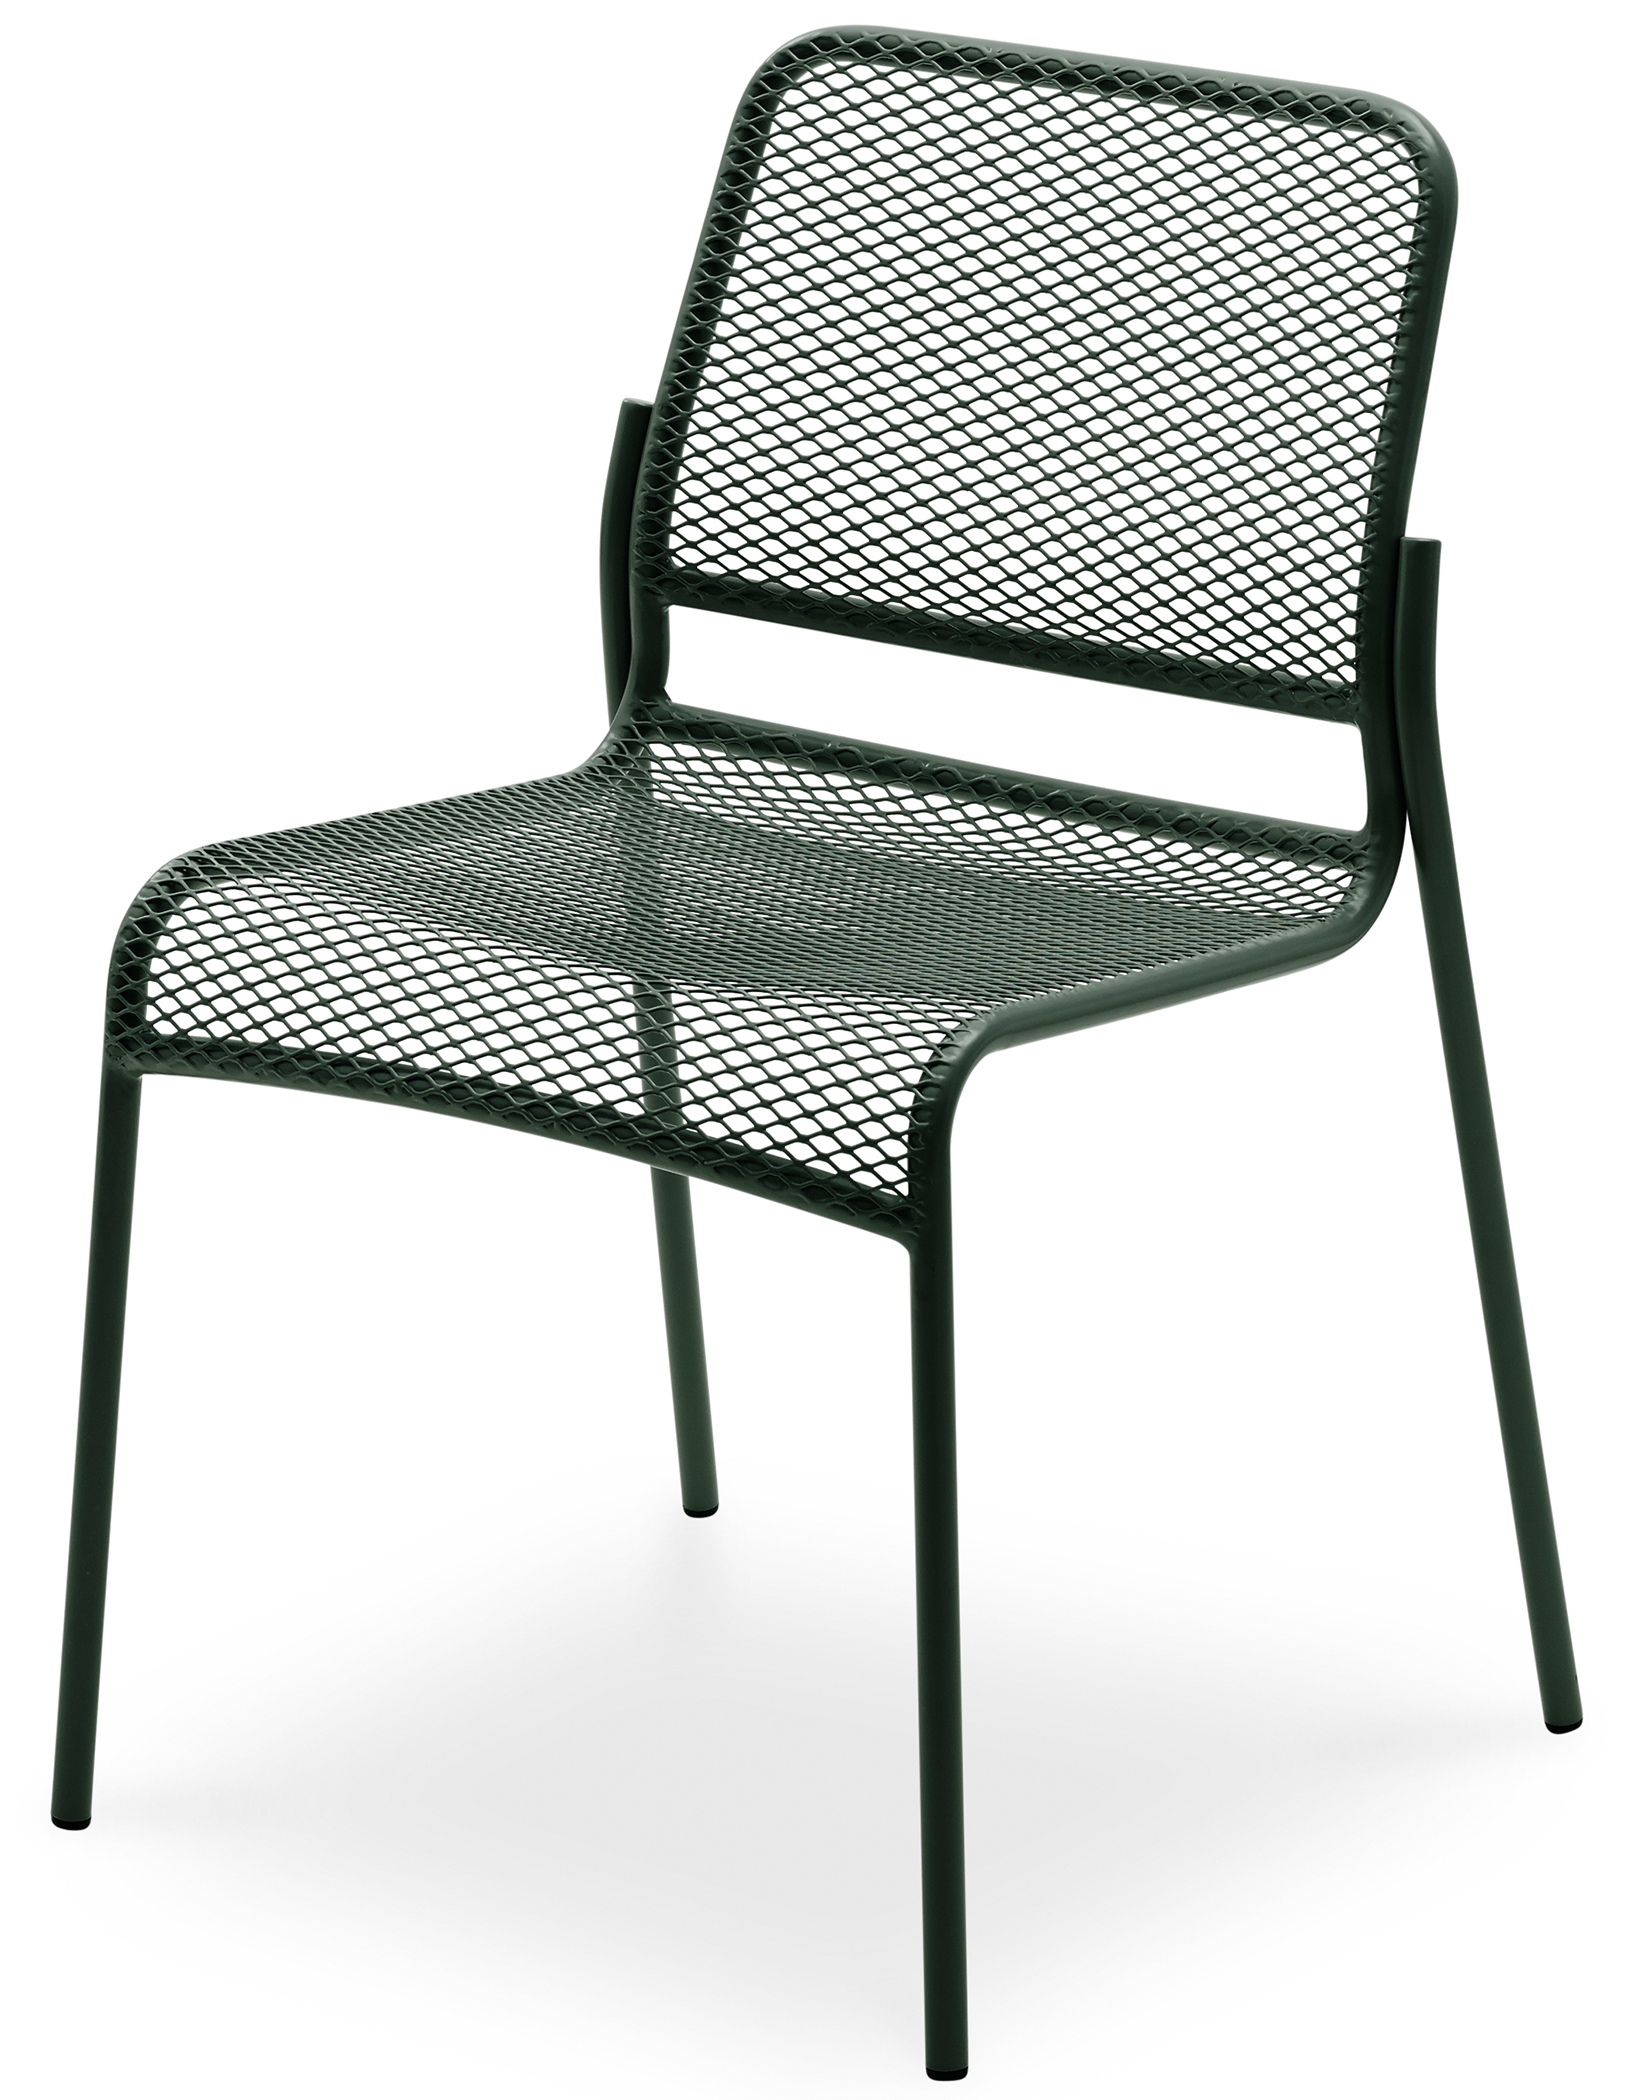 Pleasing Skagerak Mira Outdoor Chair Armchair Tables Design Lamtechconsult Wood Chair Design Ideas Lamtechconsultcom